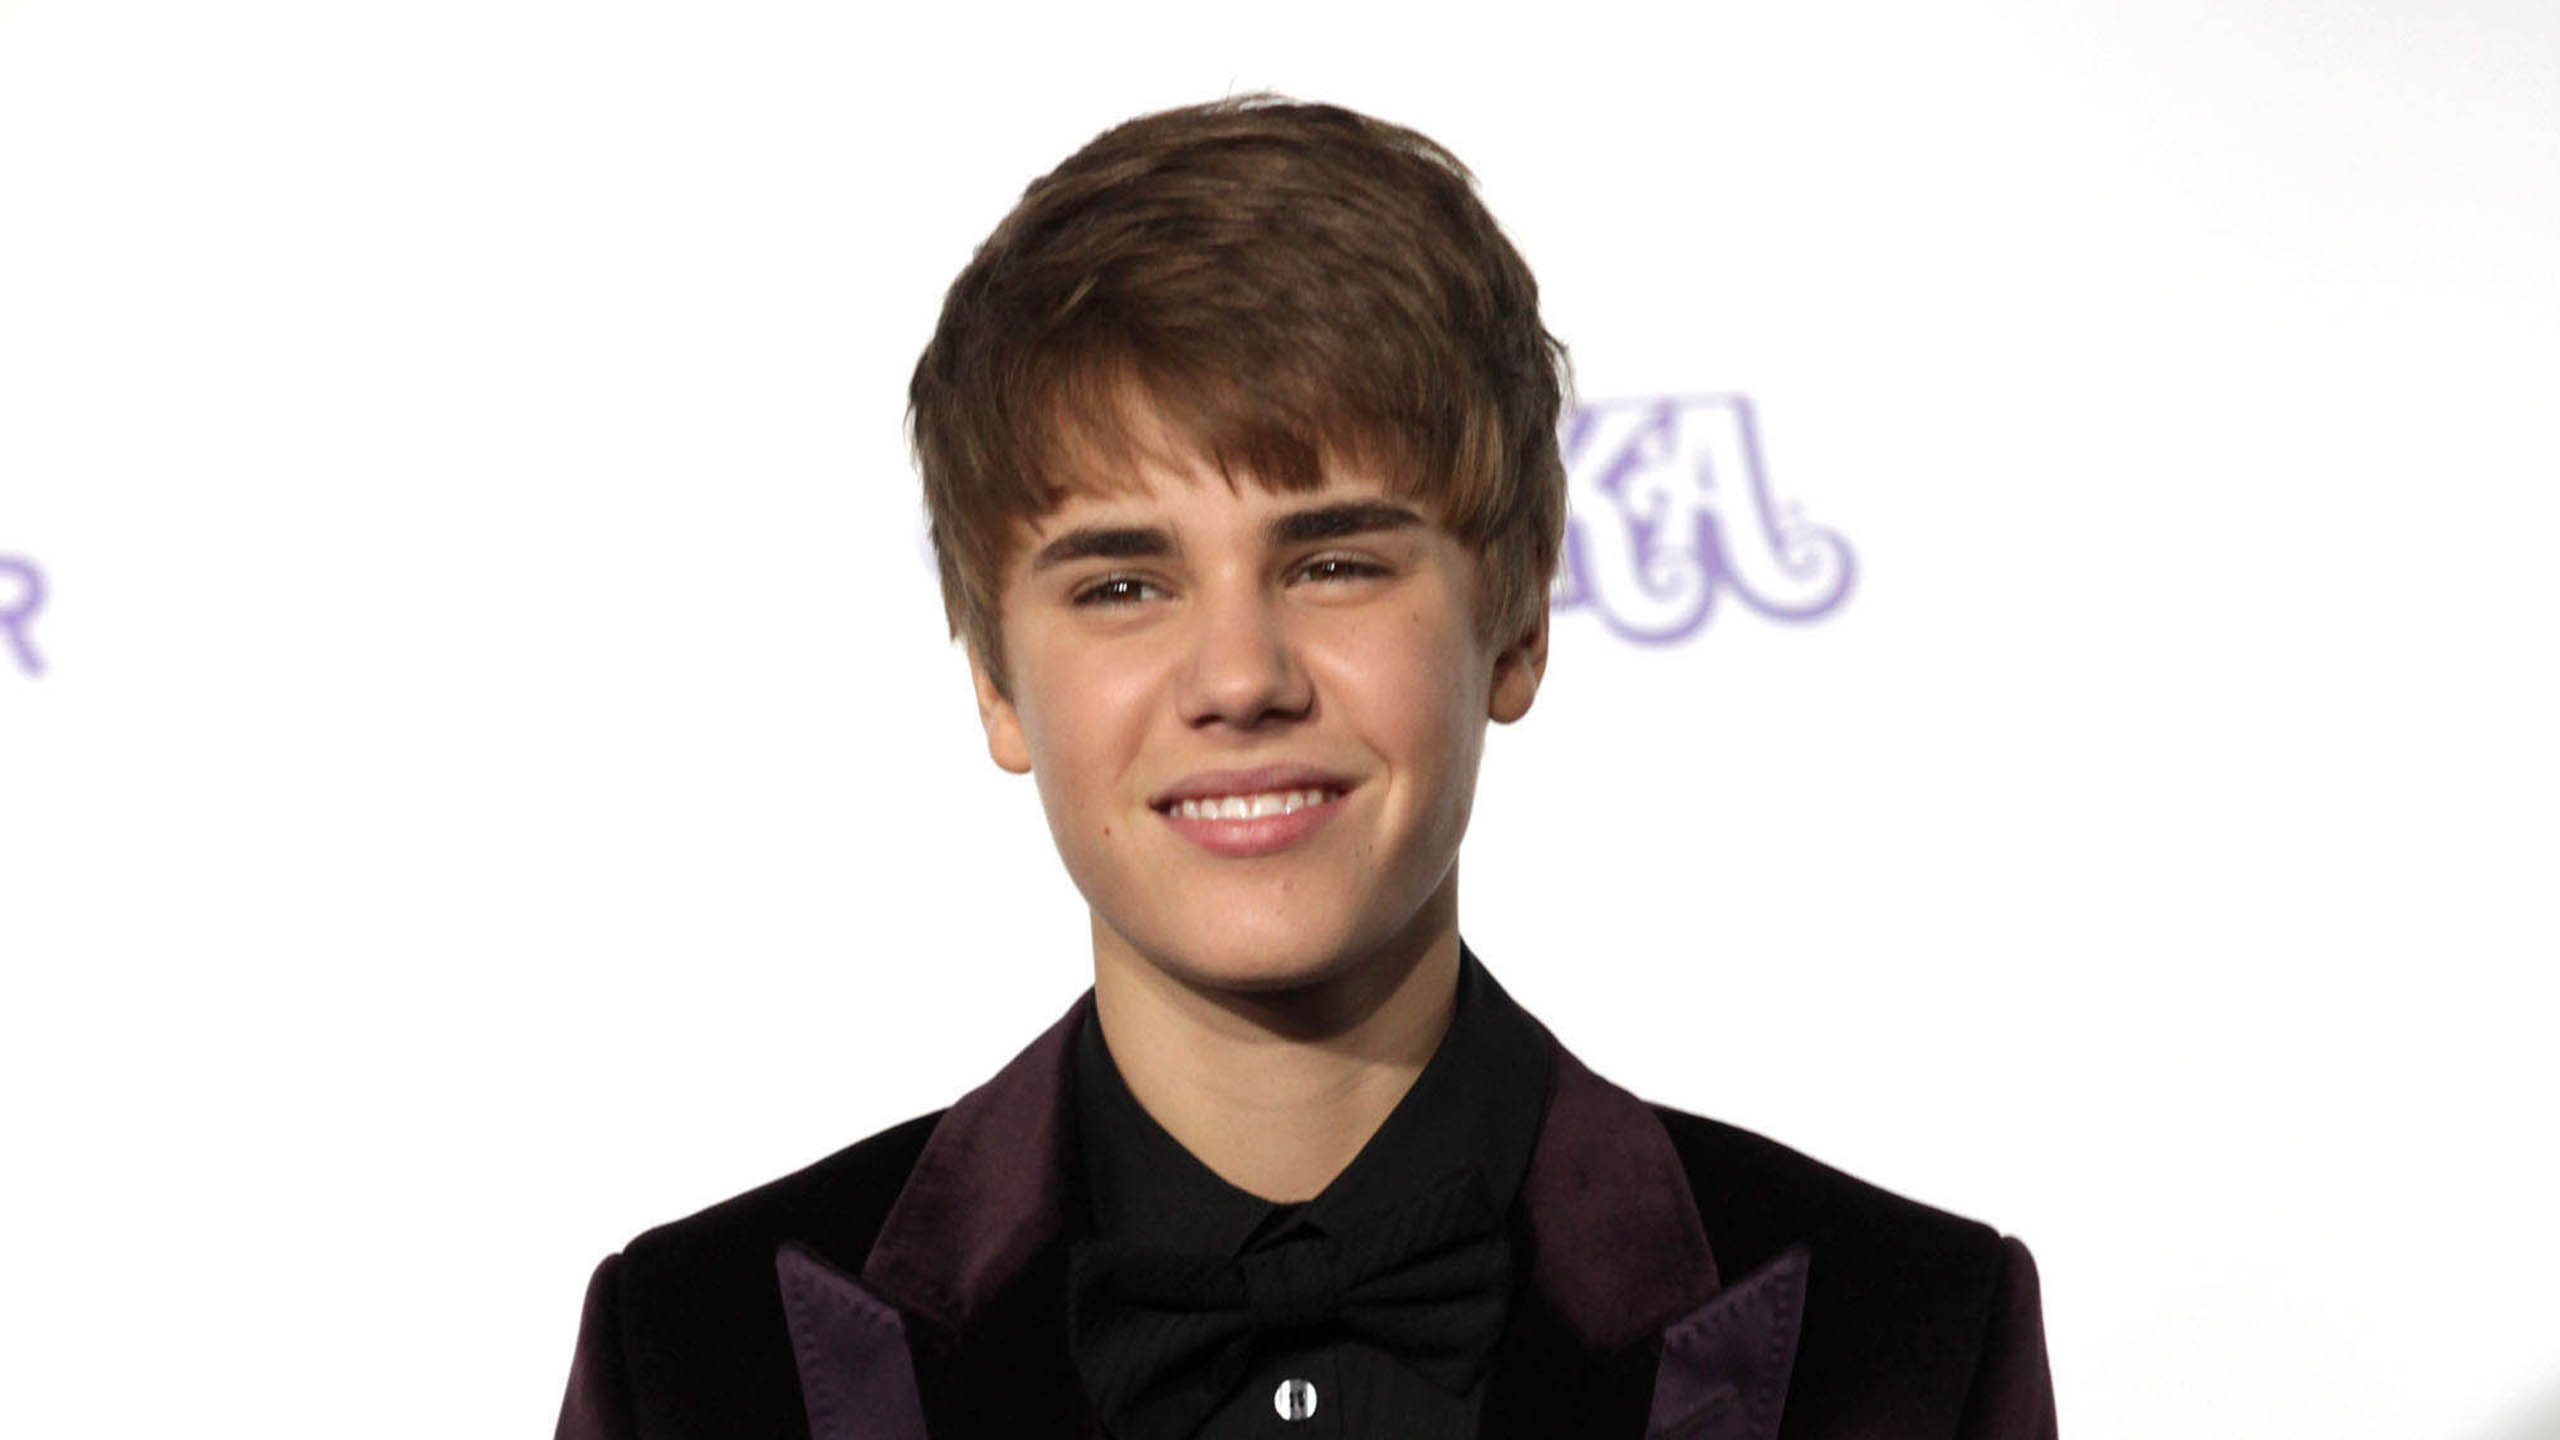 Justin Bieber HD new 2015 free wallpaper,stars and gallery,new photos nice wallpaper